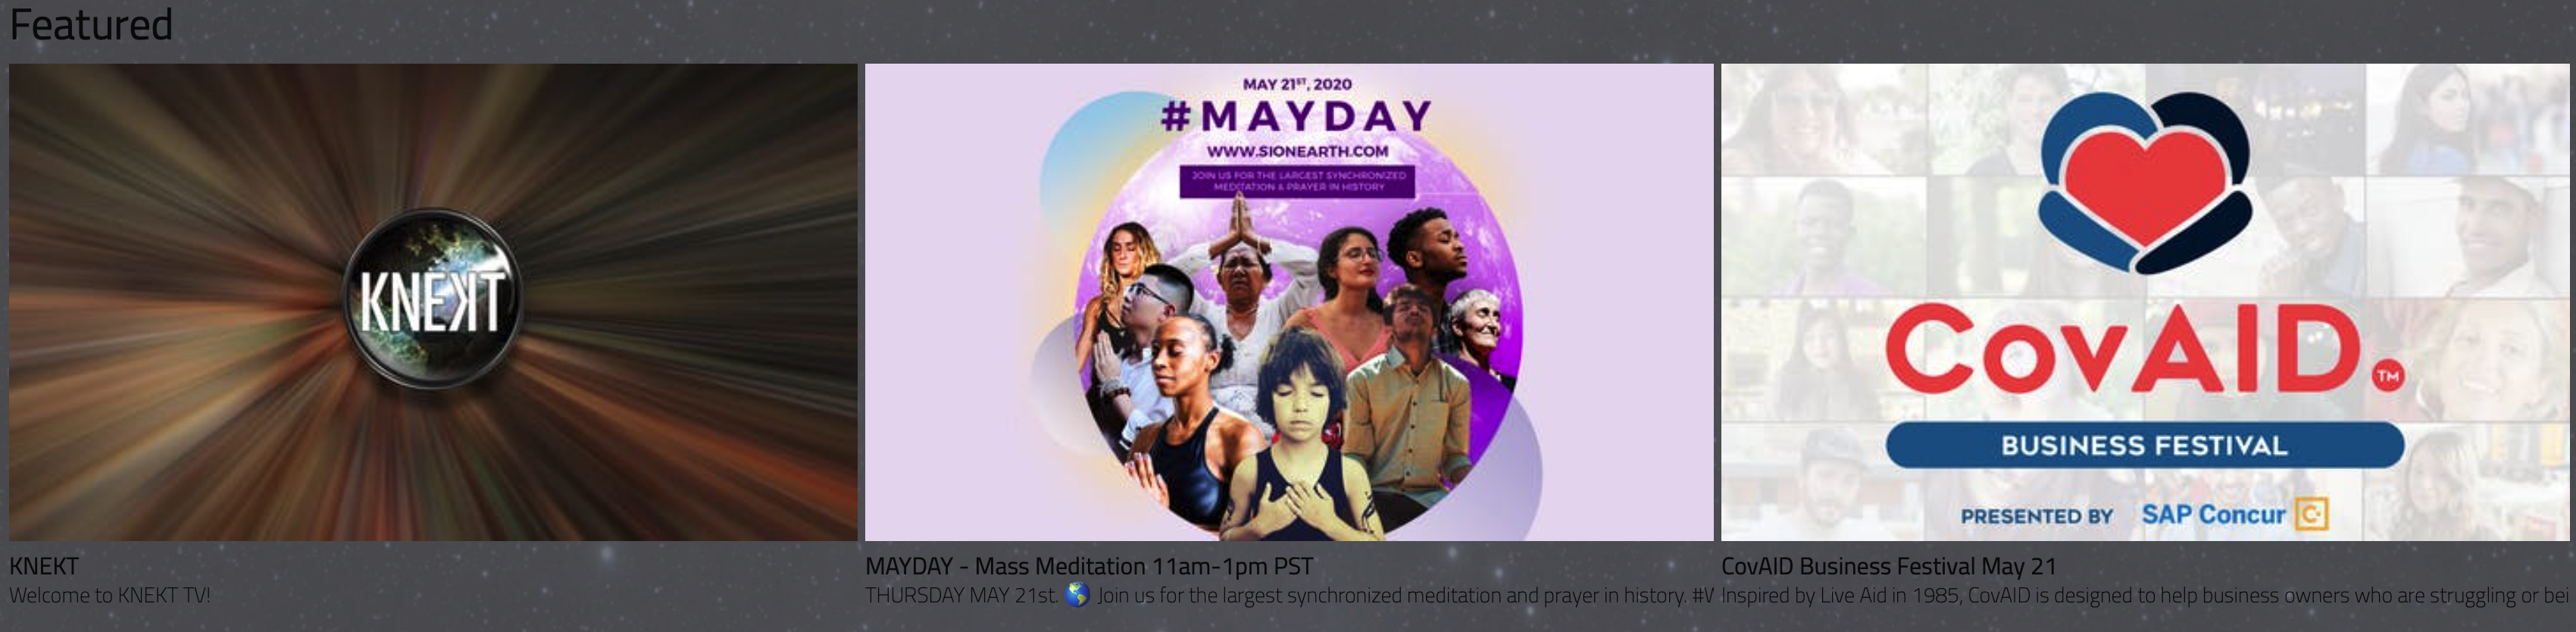 KNEKT TV Announces Its Biggest Day in Live-Streaming - Two Worldwide Events for Positivity on May 21